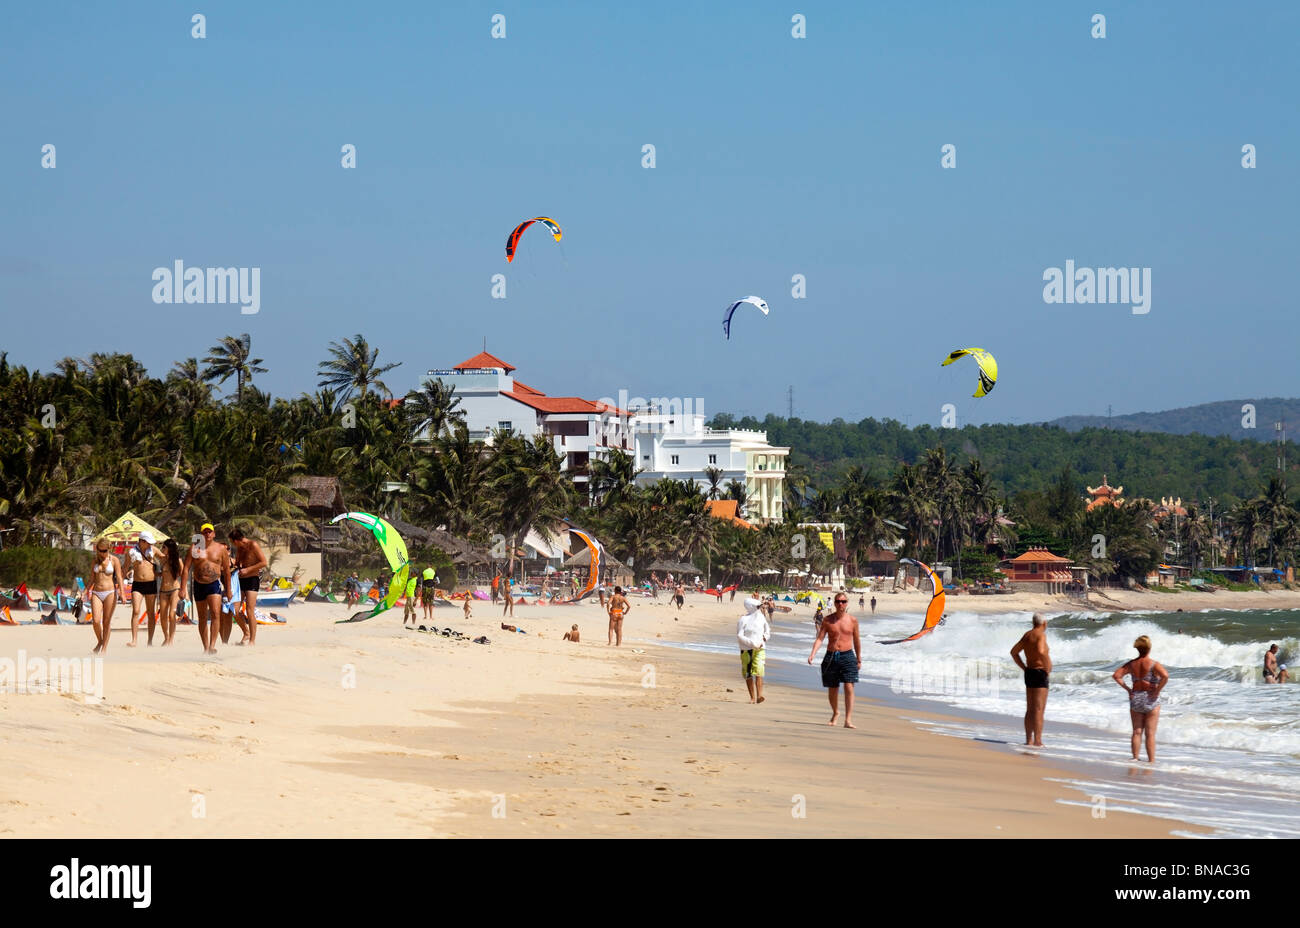 Main beach Mui Ne with tourists and kitesurfers - Stock Image